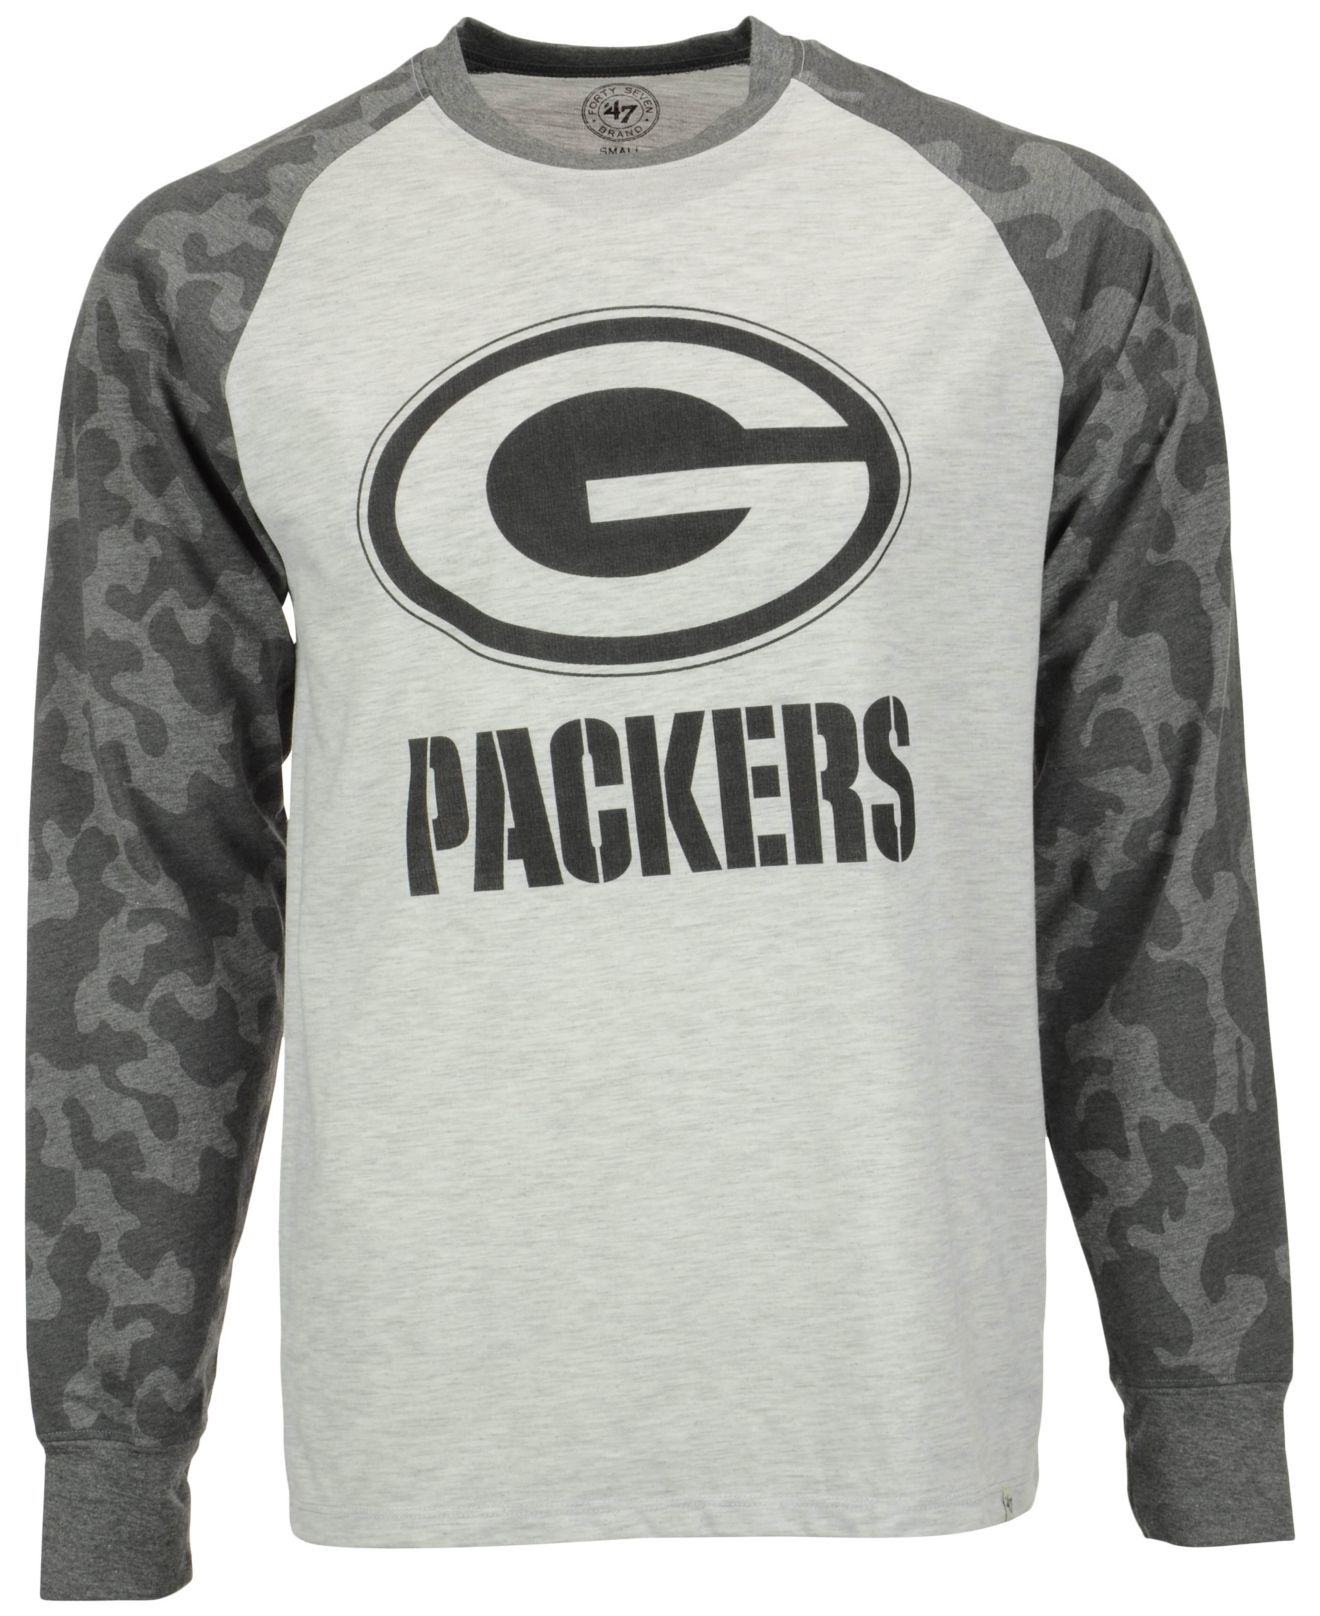 release date 0a3a0 4cf04 47 Brand Gray Men's Green Bay Packers Stealth Camo Sweatshirt for men